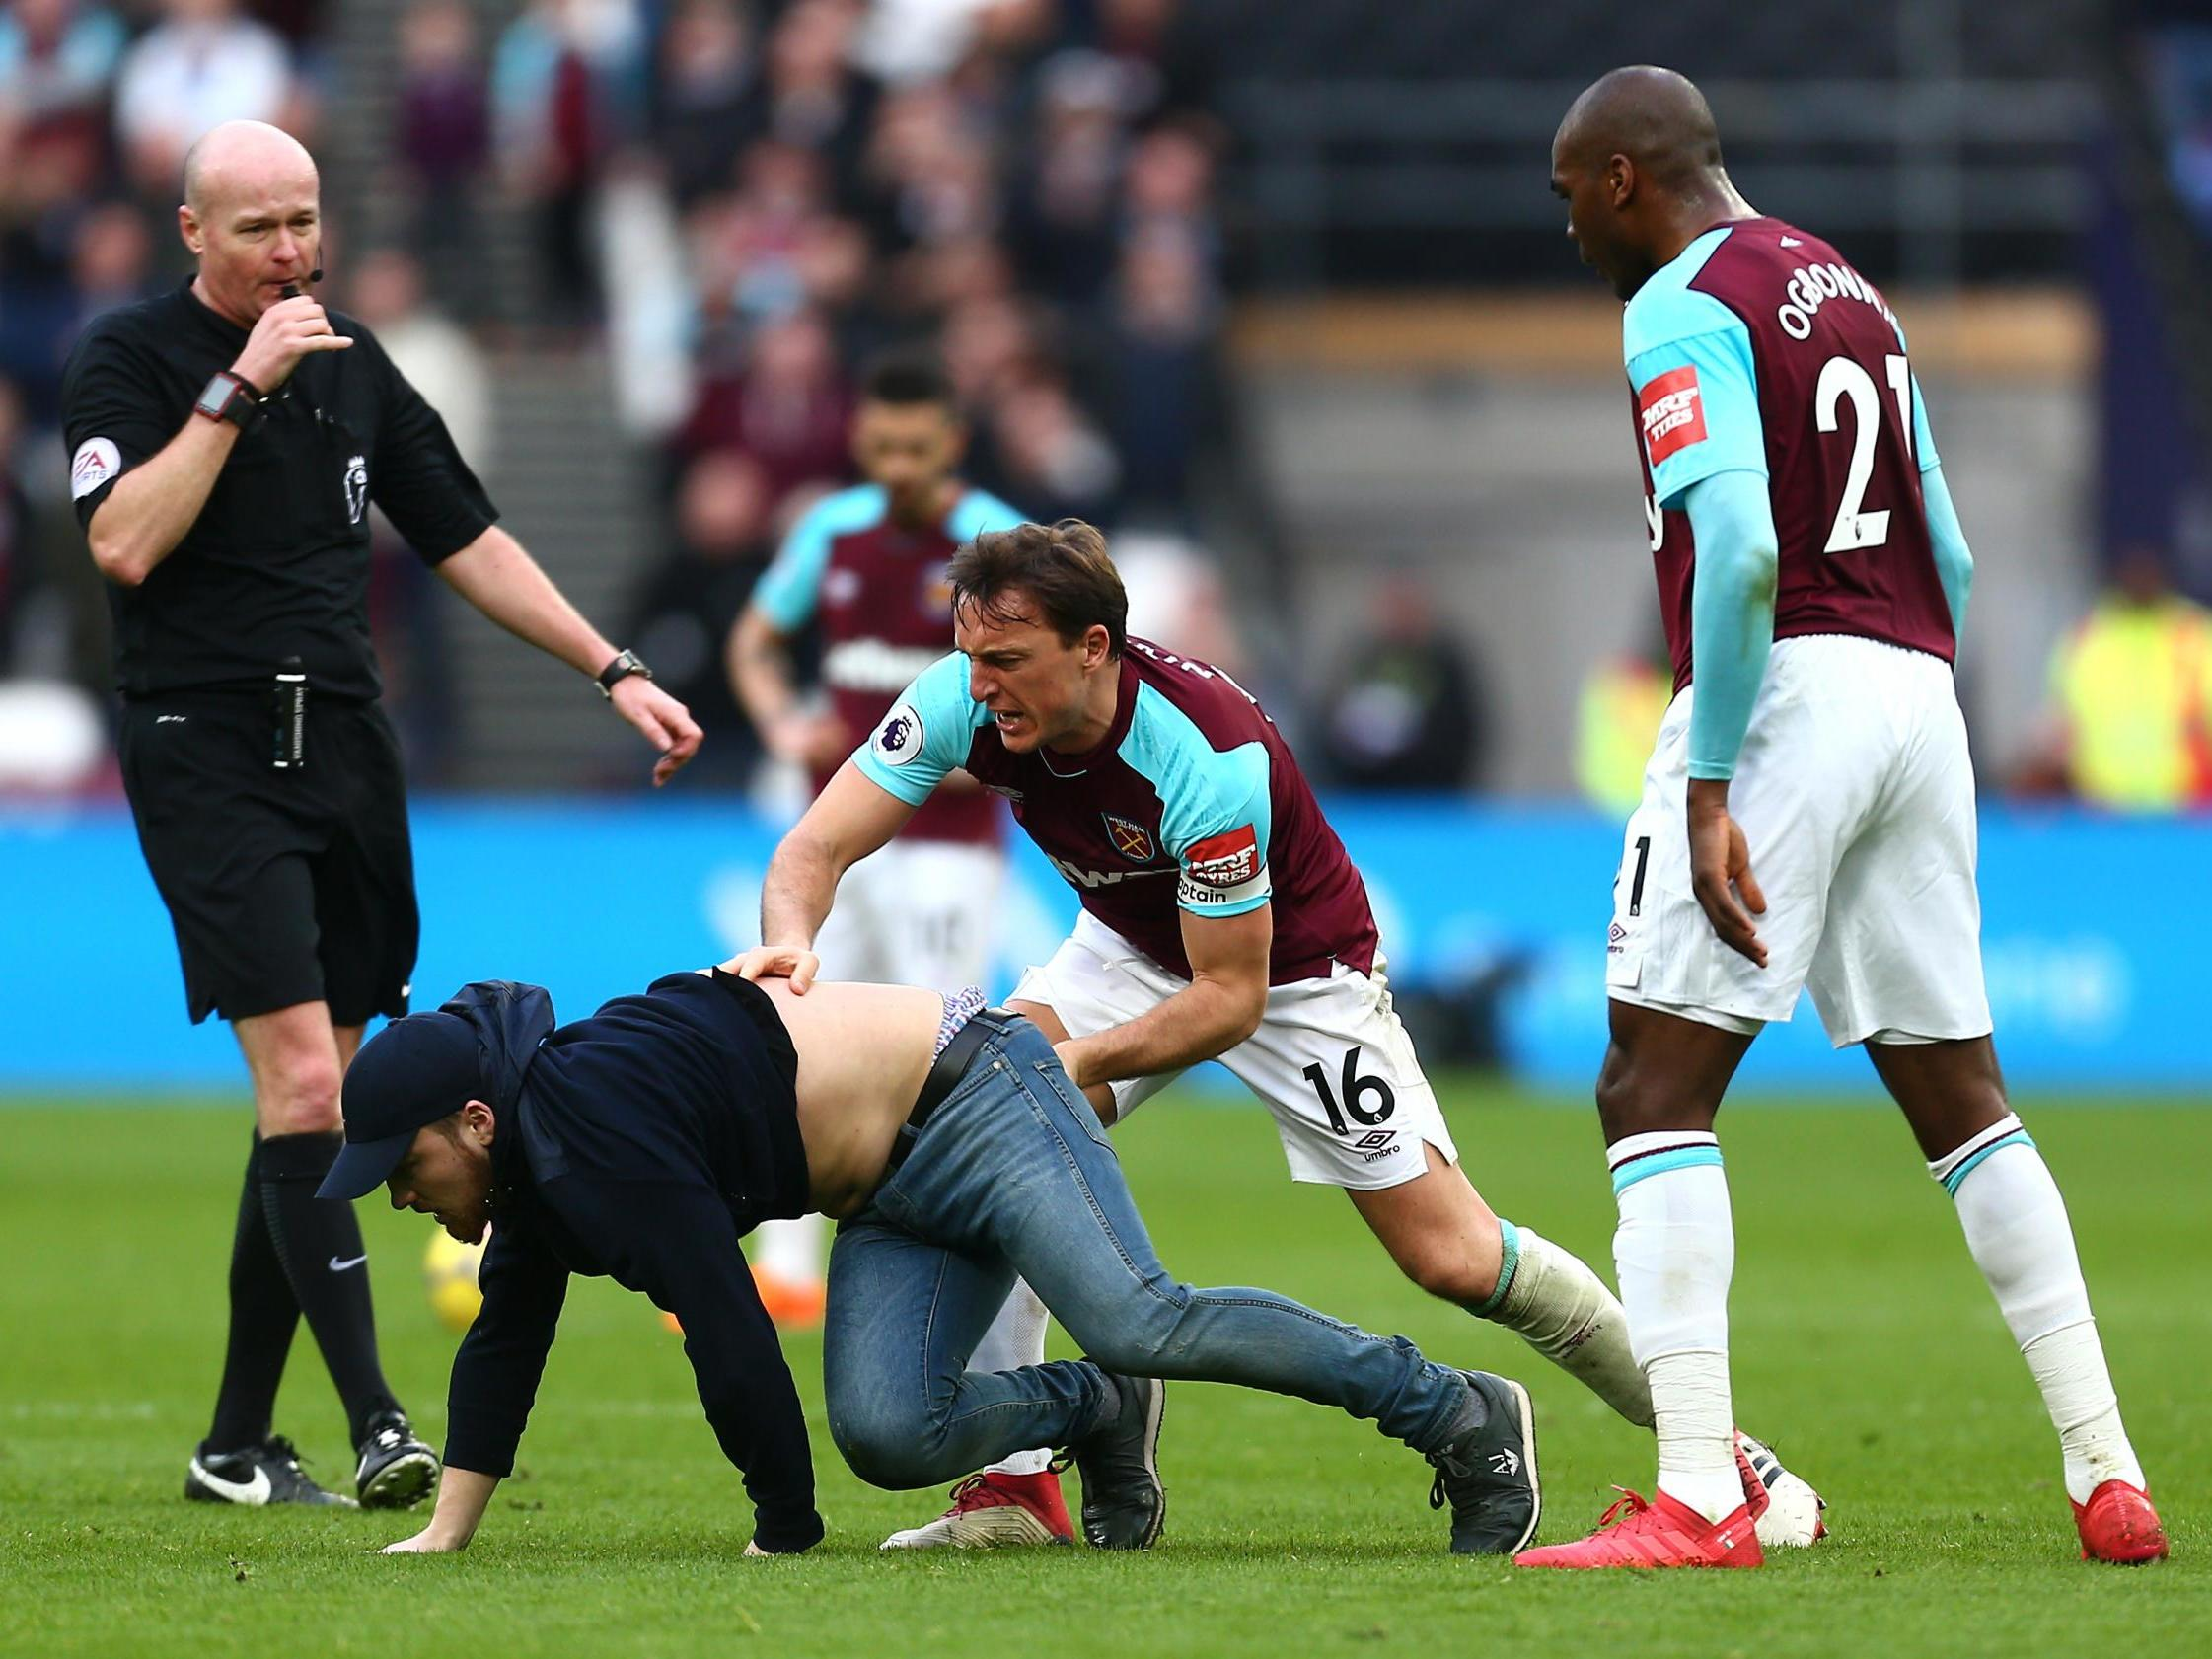 60b7b0315 West Ham fined £100,000 for crowd disturbances during Burnley clash | The  Independent